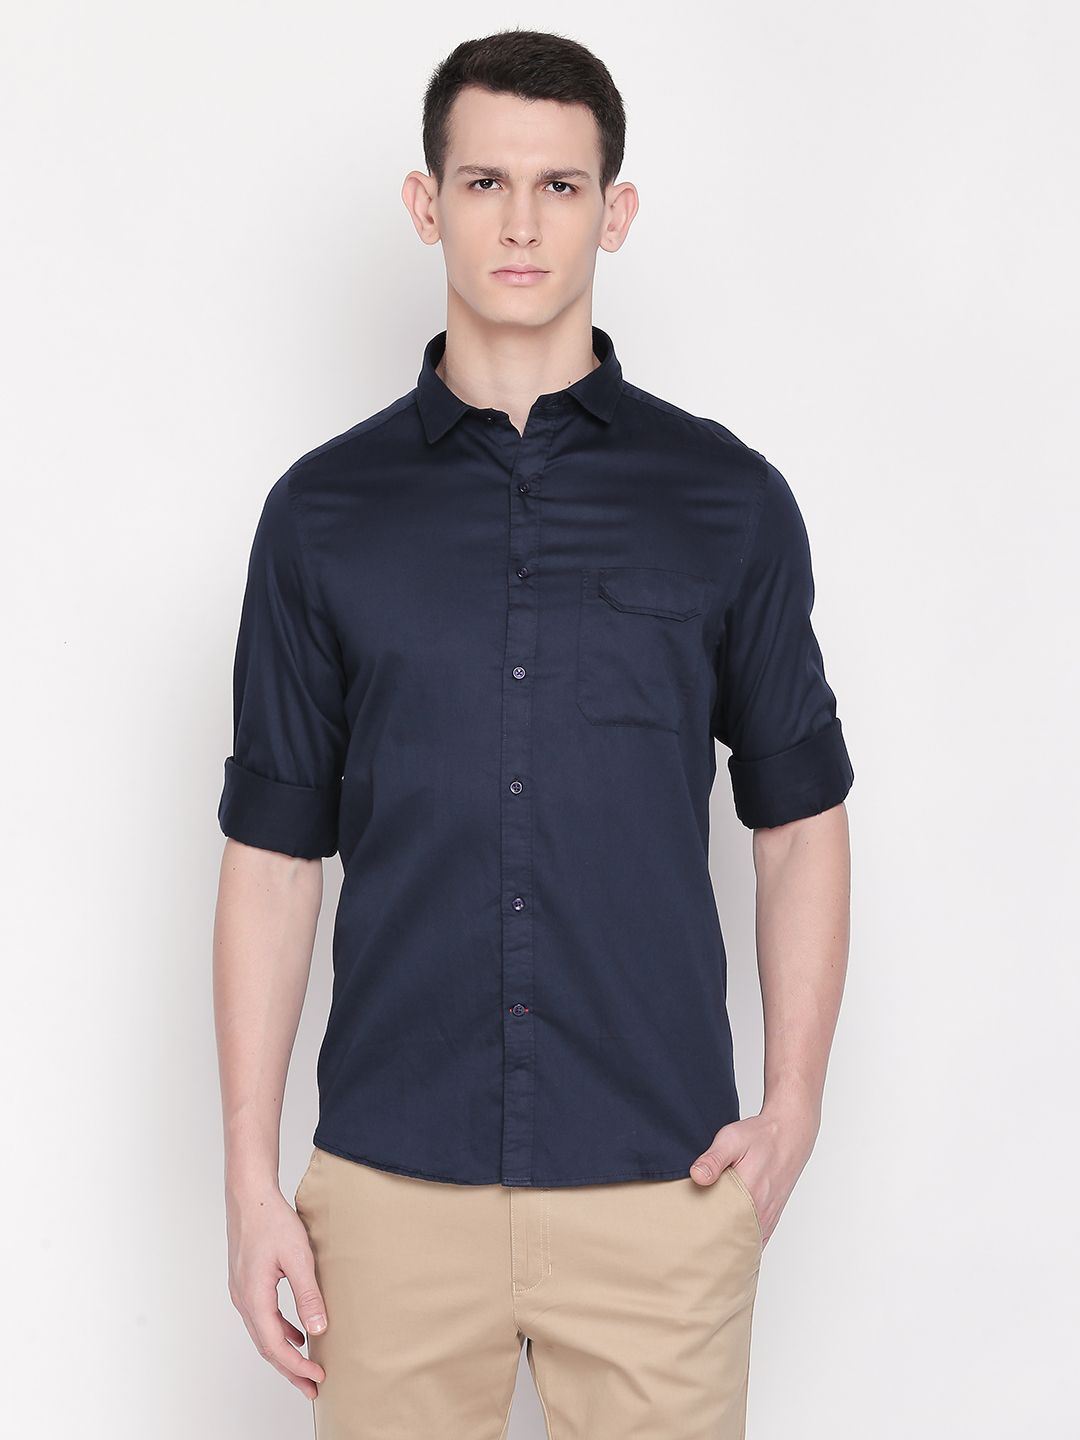 SOLEMIO | Navy Blue Solid Casual Shirt